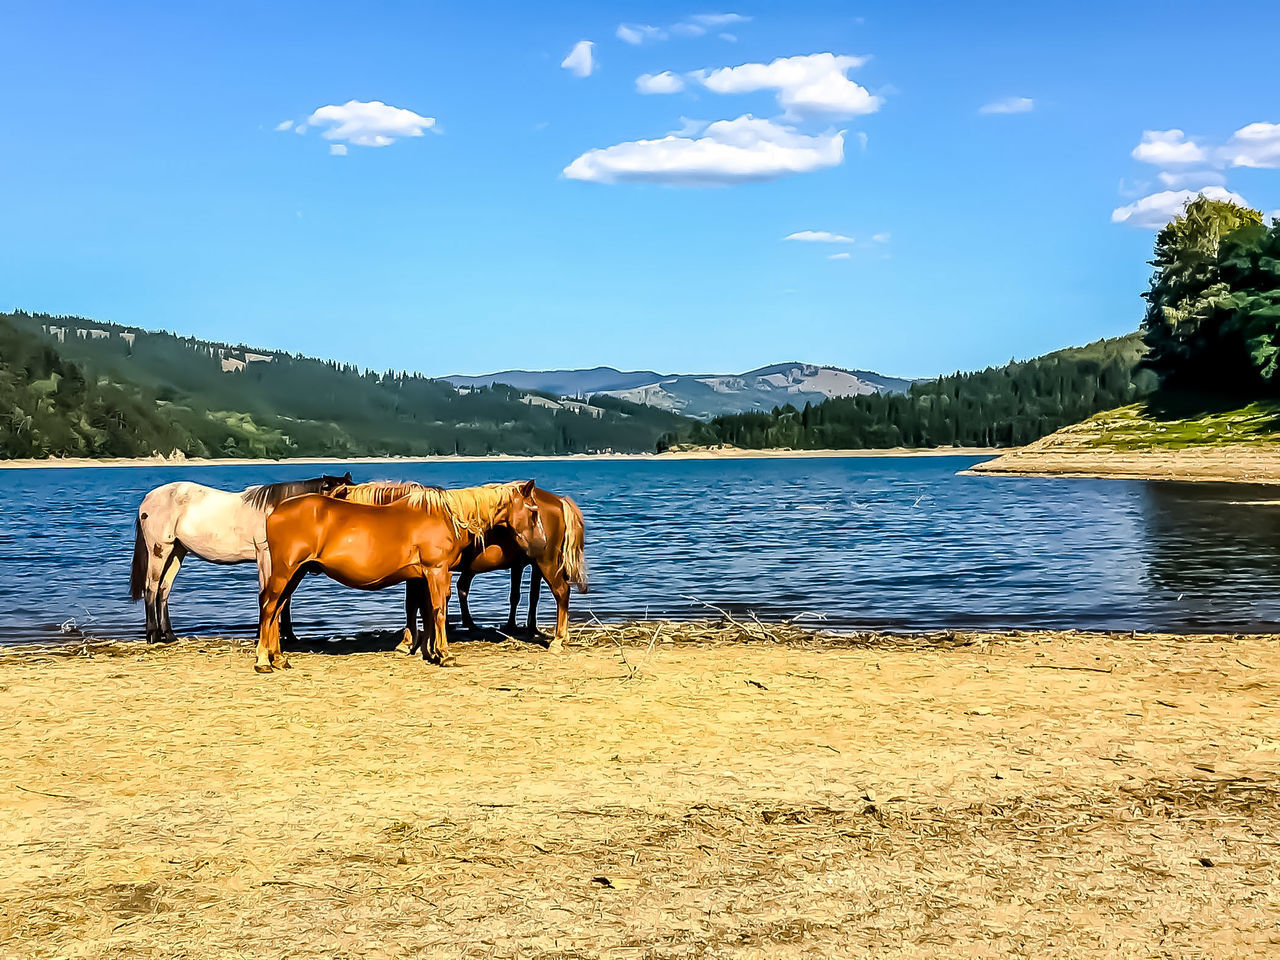 Horses ,nature lake by elvio Animal Sky Mountain Domestic Animals Outdoors The Great Outdoors - 2017 EyeEm Awards Yogainspiration Wallpaper Design Fine Arts Photography Eye Em Nature Lover Art Is Everywhere EyeEm Diversity Magazine Cover Design EyeEmBestPics National Geographic EyeEmNewHere EyeEm Best Edits Nature Artphotography Beauty In Nature Travel Destinations Eyem Best Shots Nature_collection The Great Outdoors - 2017 EyeEm Awards The Great Outdoors - 2017 EyeEm Awards Place Of Heart The Great Outdoors - 2017 EyeEm Awards